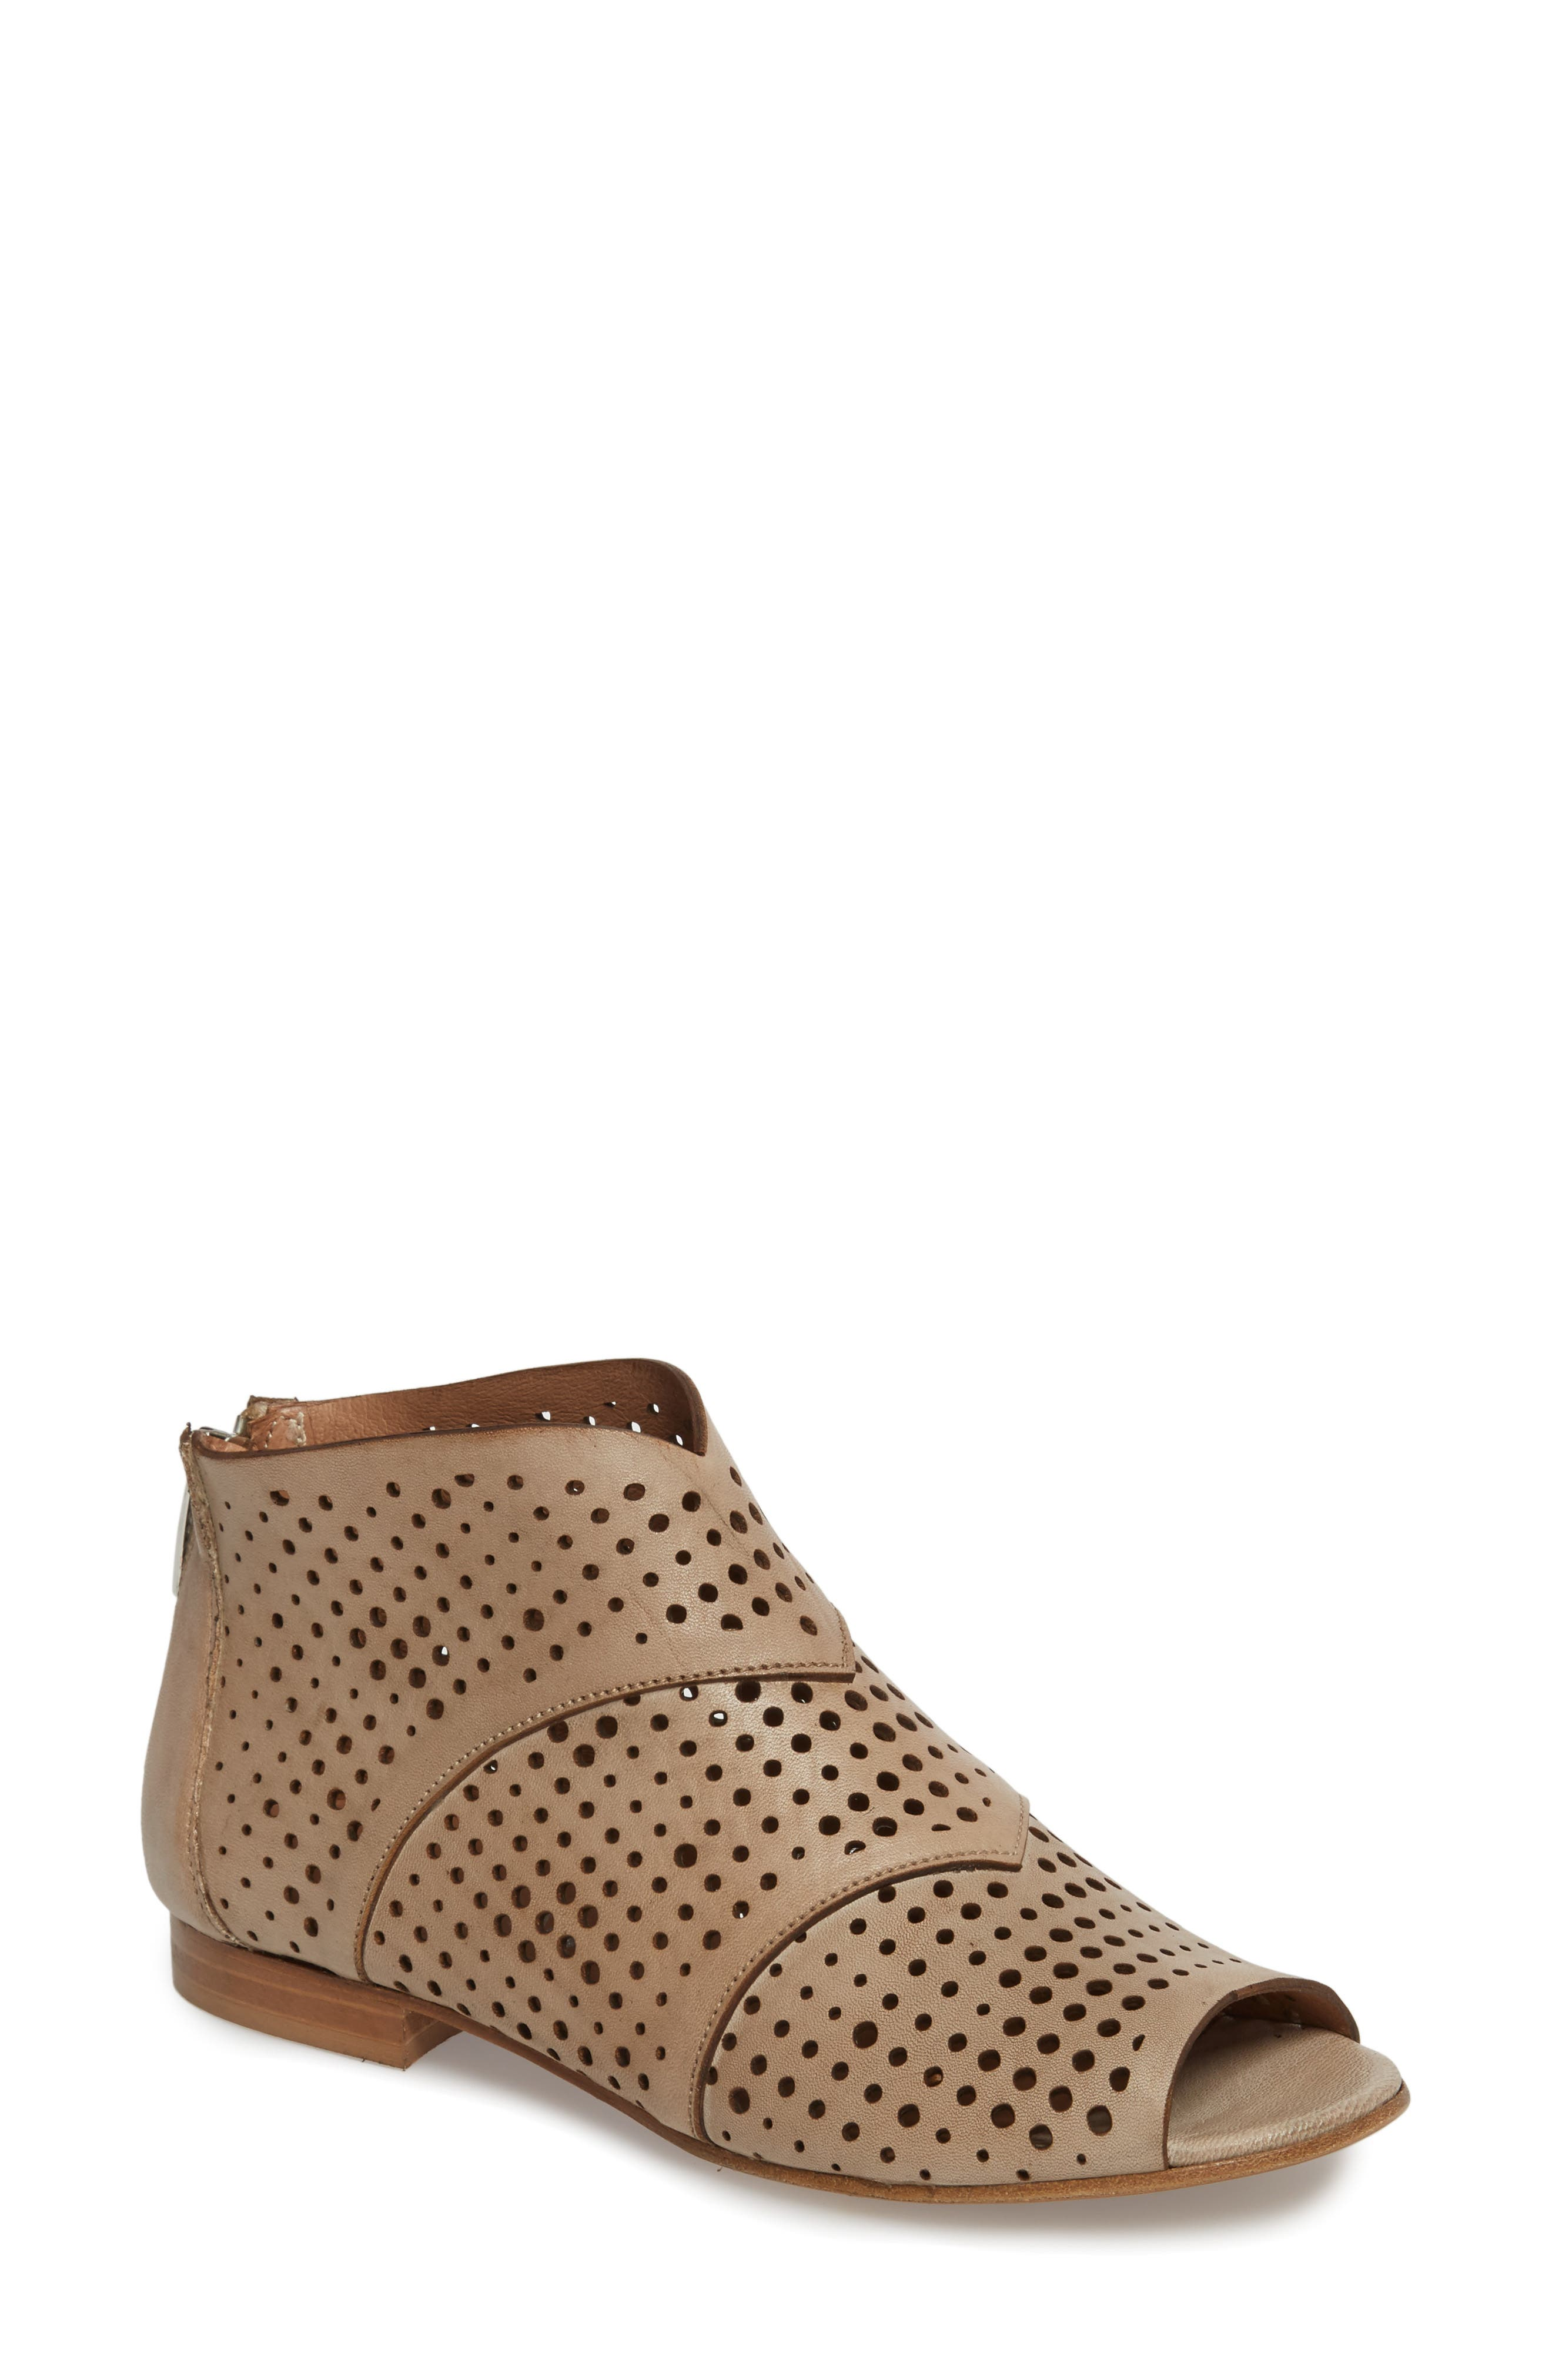 Brealey Bootie,                             Main thumbnail 1, color,                             Pearl Leather